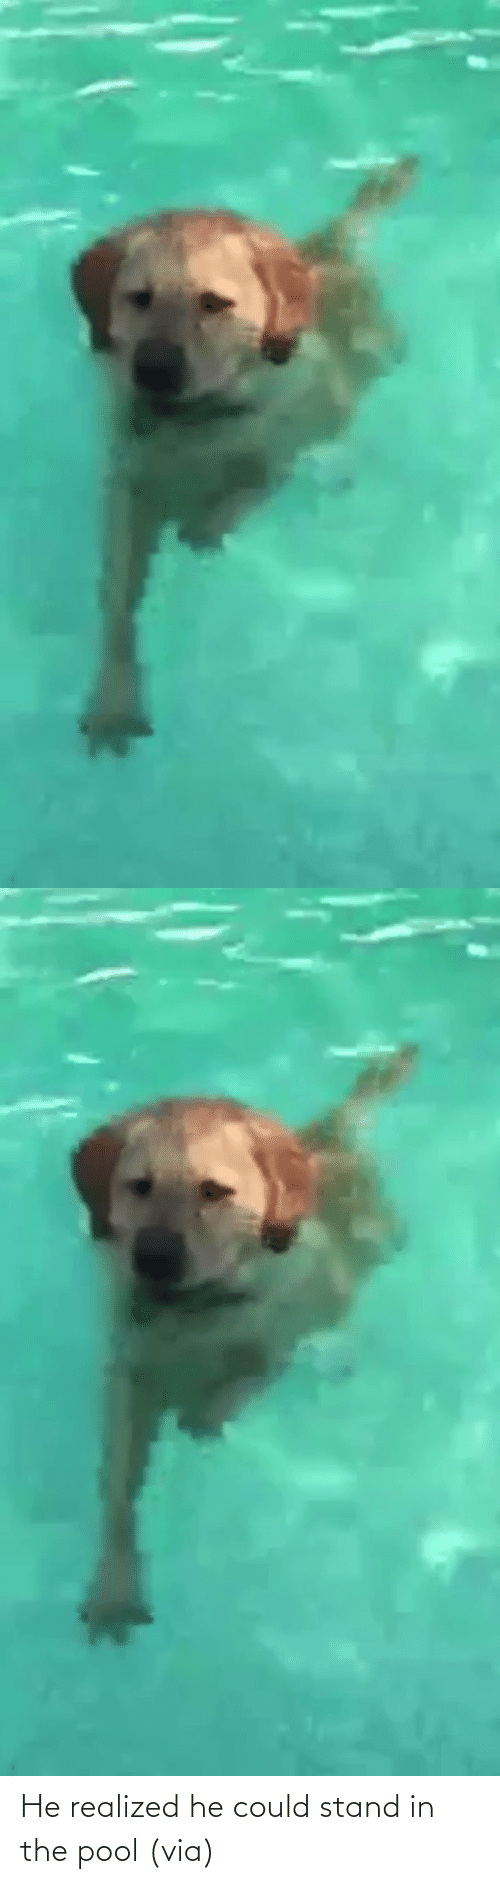 Could: He realized he could stand in the pool (via)